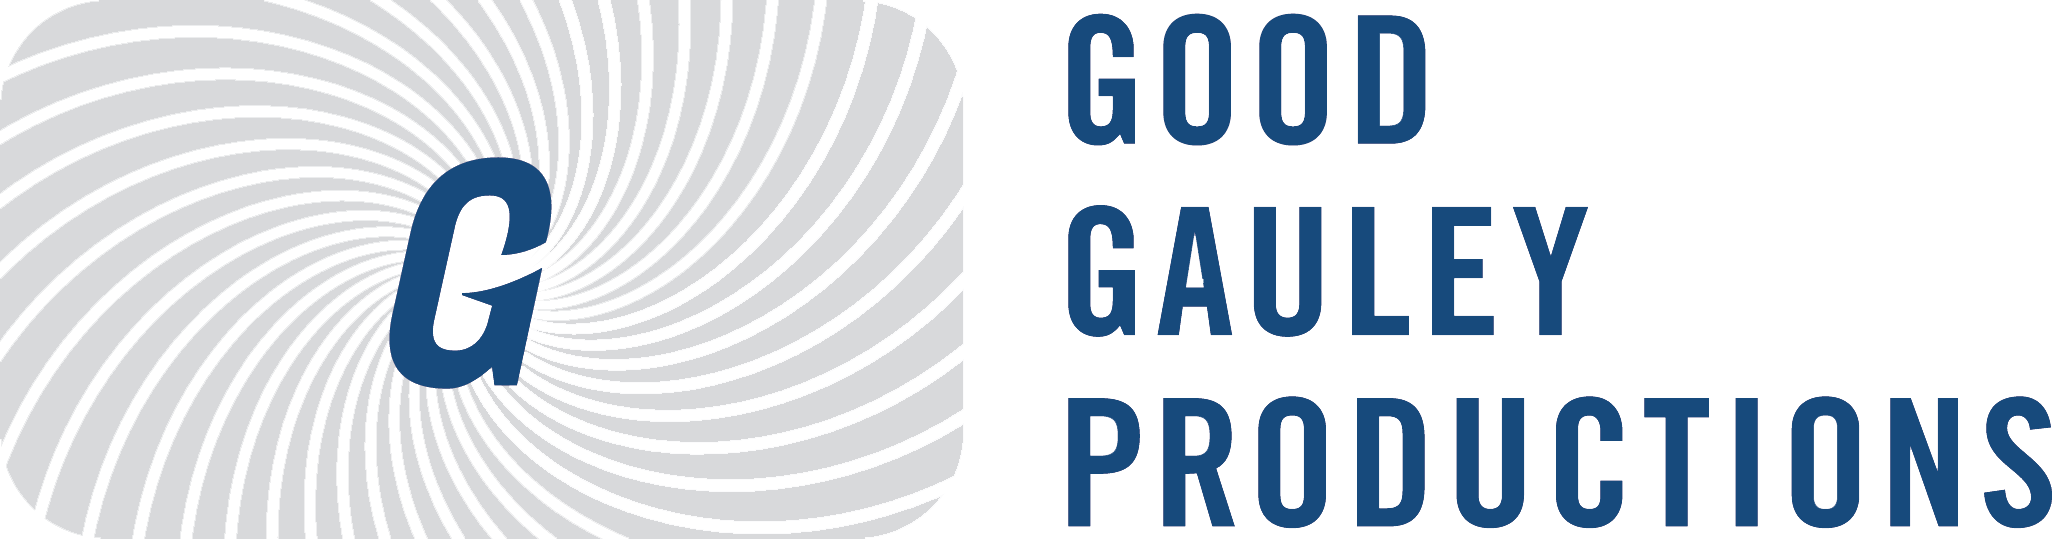 Good Gauley Productions